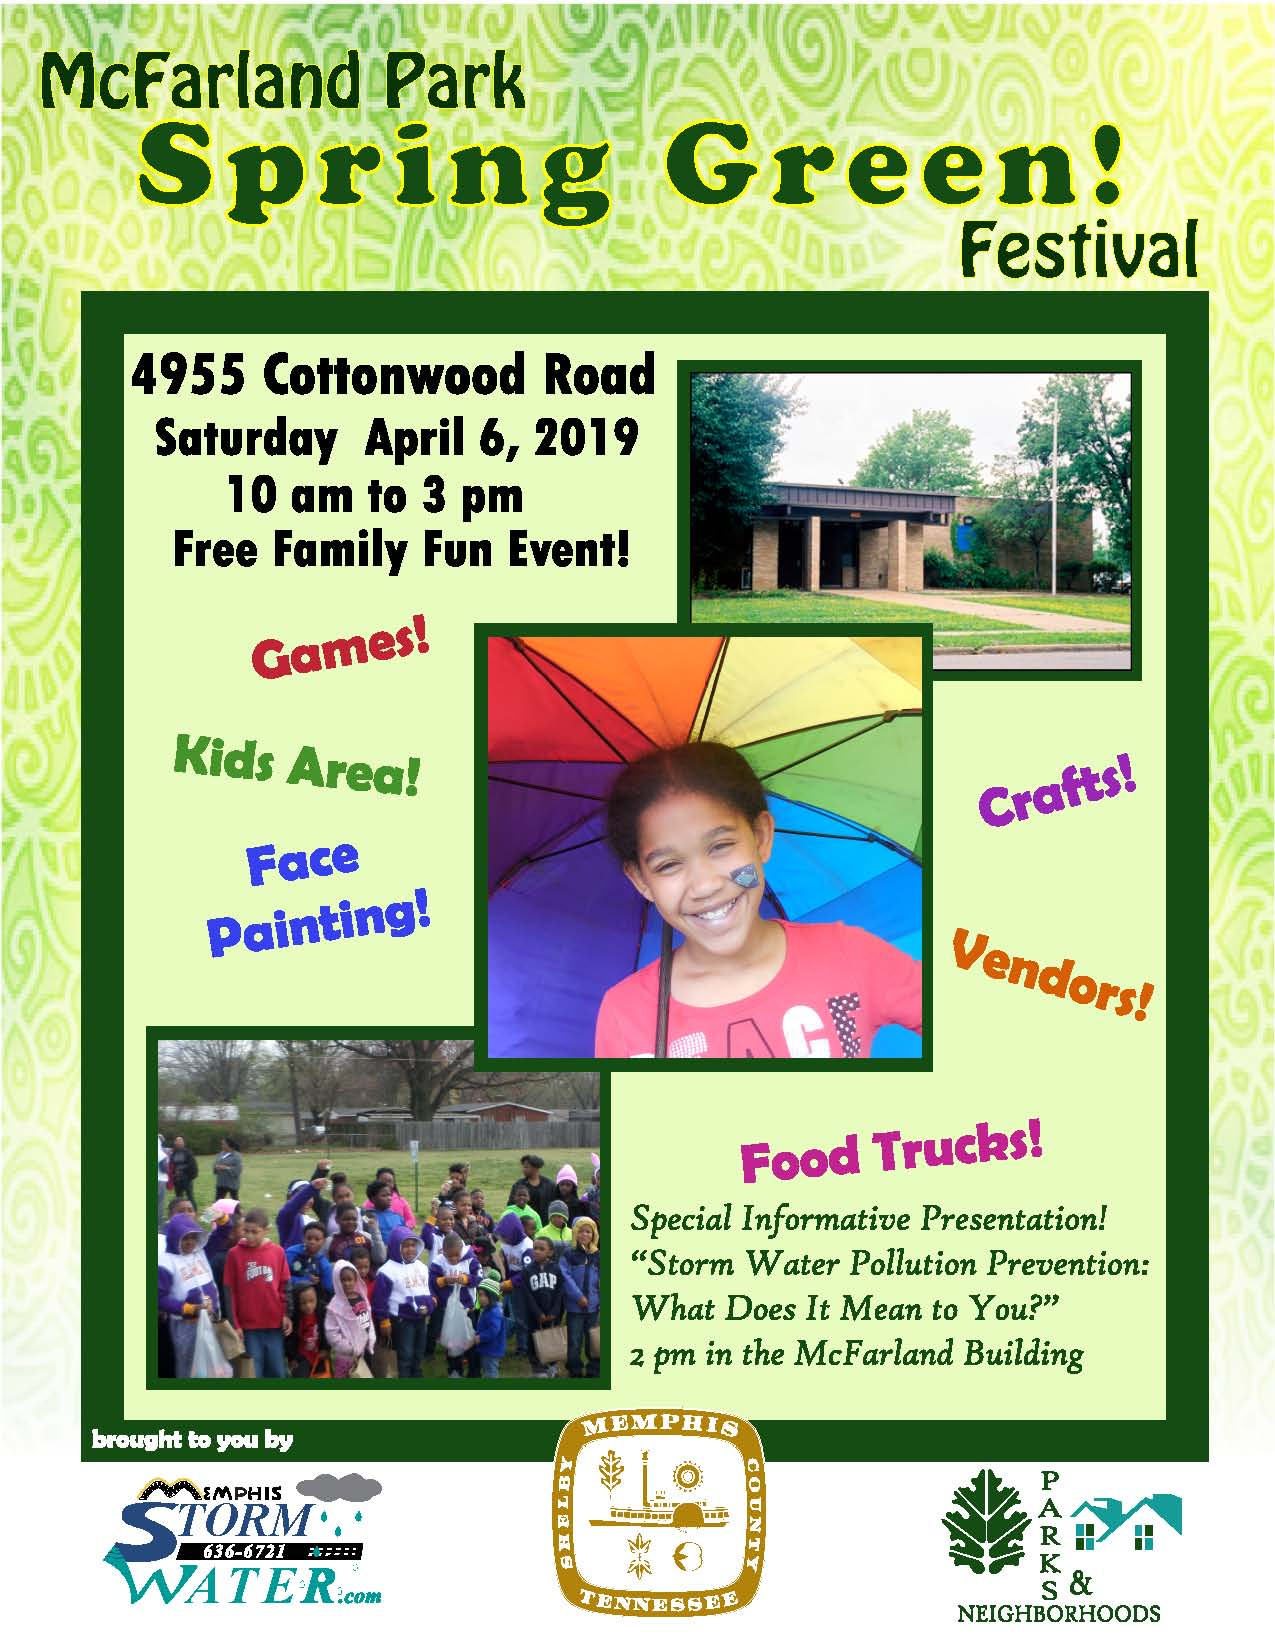 This event is brought to you by the City of Memphis Storm Water Department, Parks and Neighborhoods Department, and McFarland Park